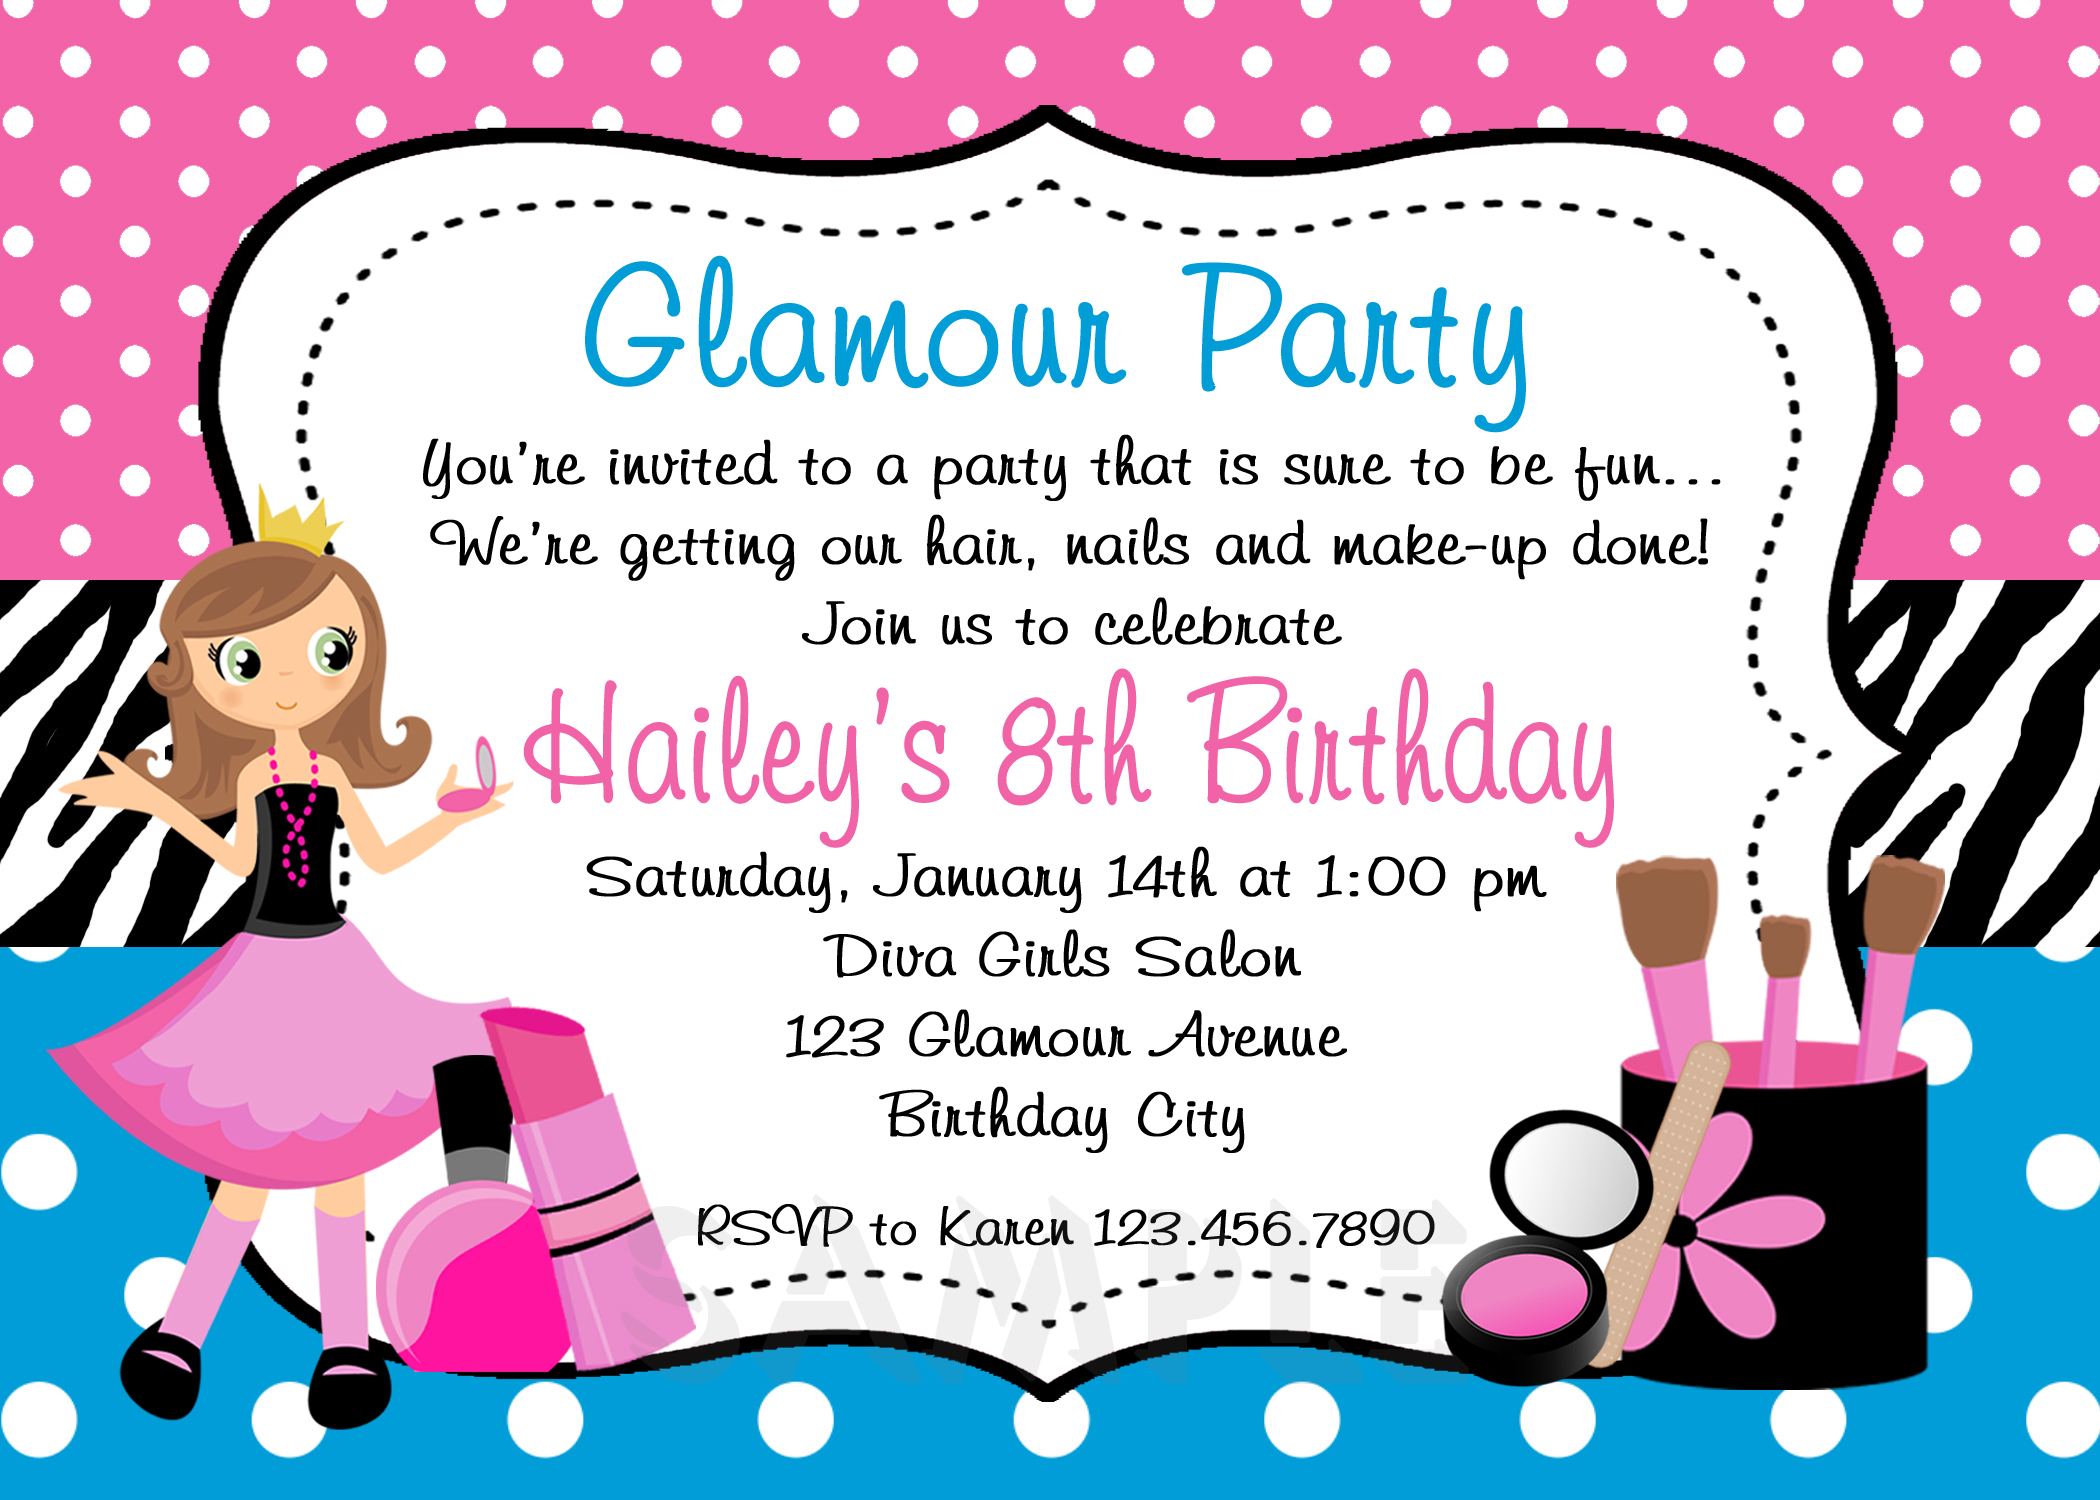 Printable birthday invitations girls glamor beauty party girls printable birthday invites filmwisefo Gallery